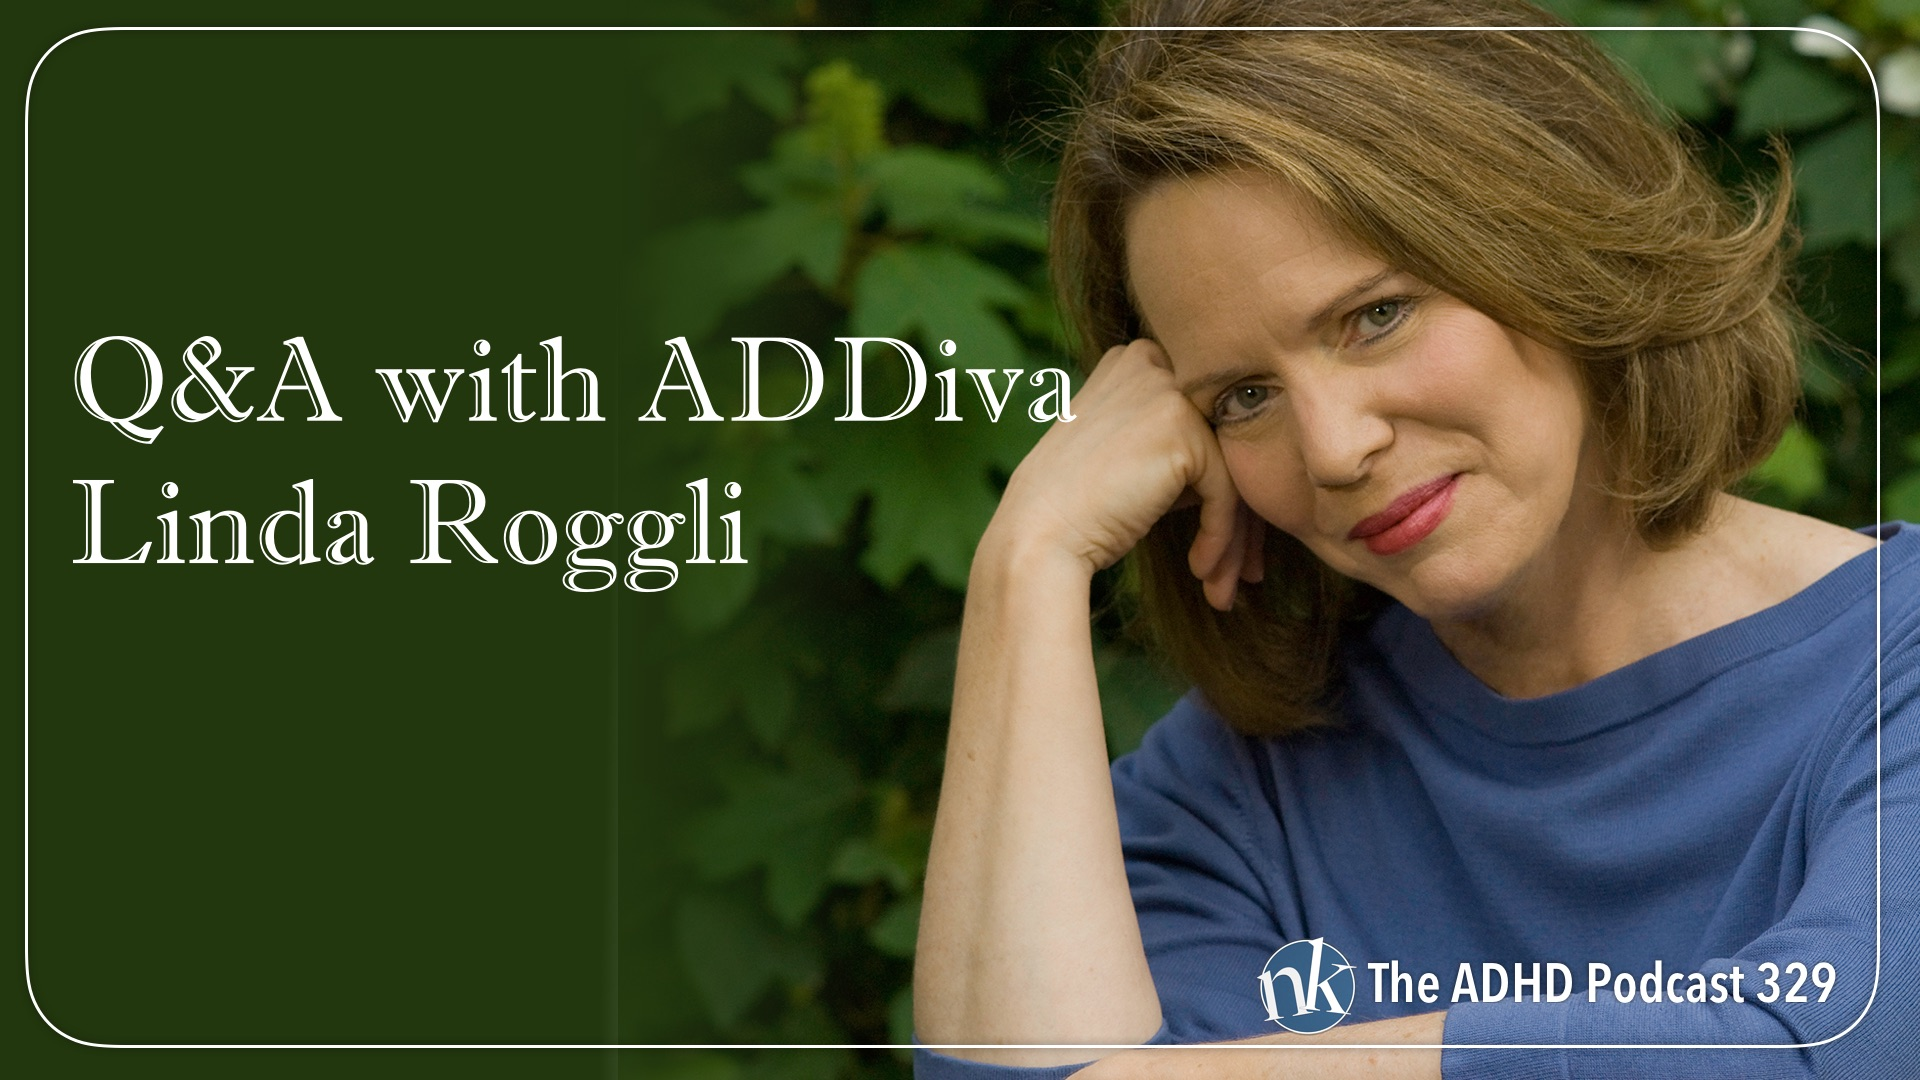 Listen to Linda Roggli on Taking Control: The ADHD Podcast